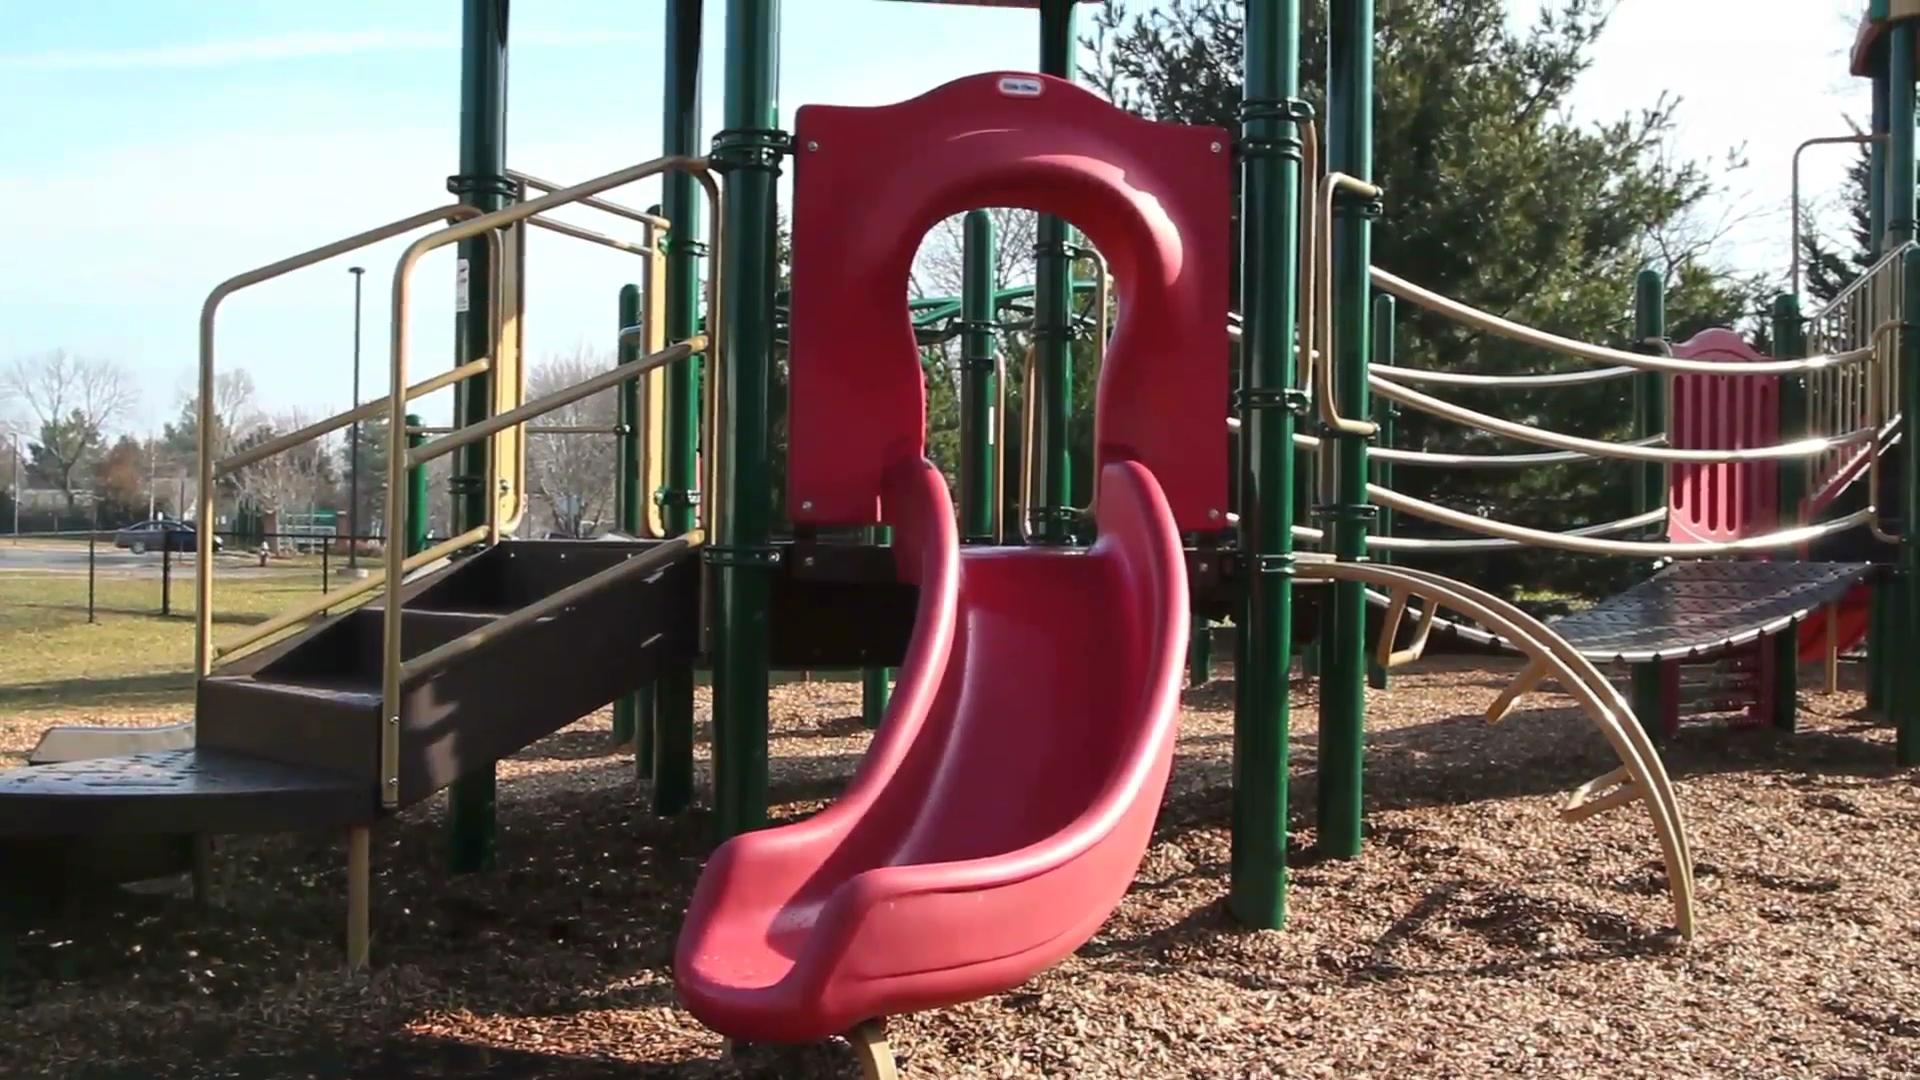 Boy finds $8,000 on playground slide and returns the cash